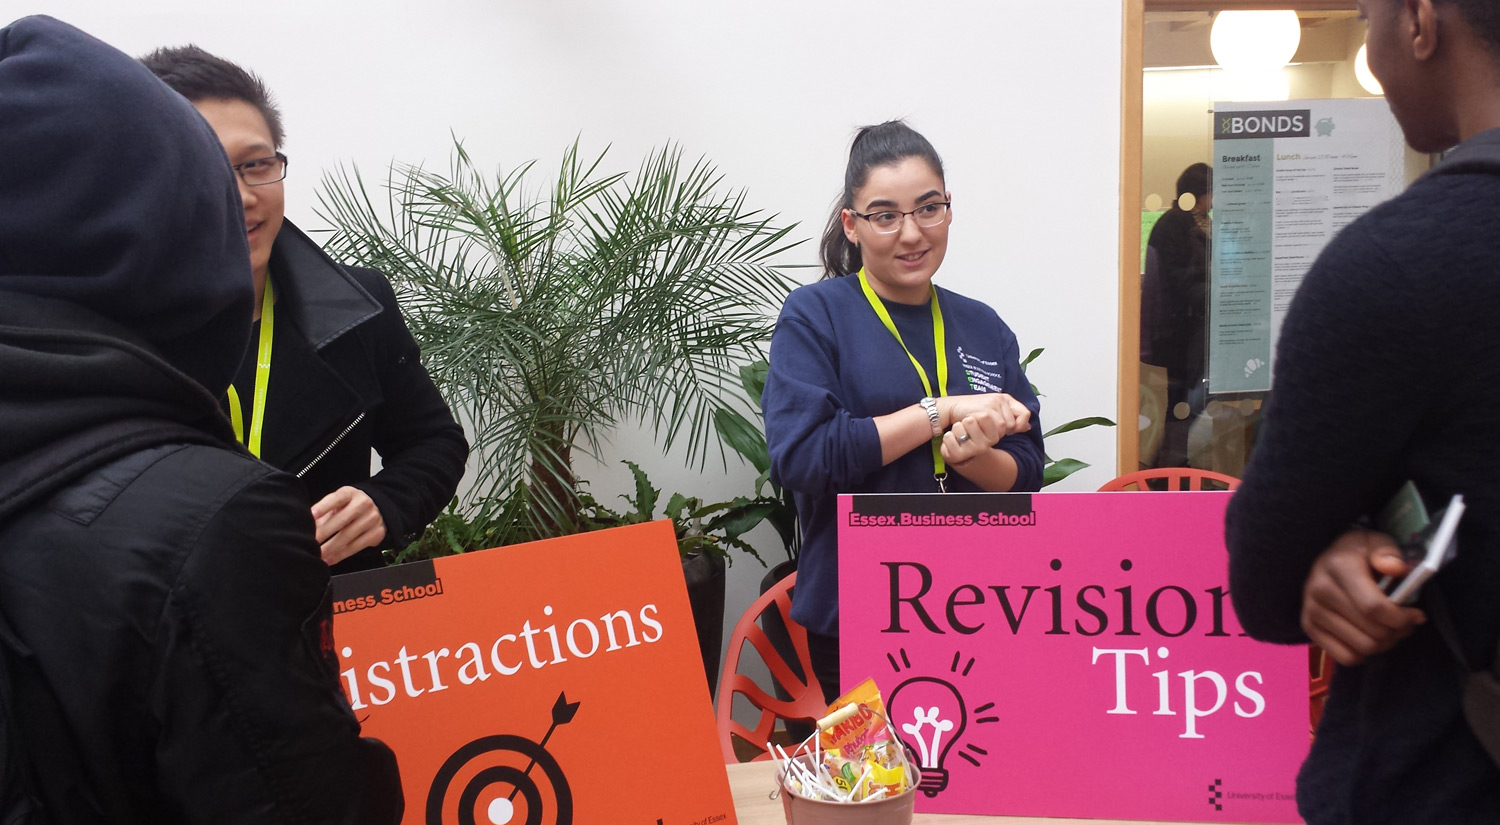 Students standing with revision posters